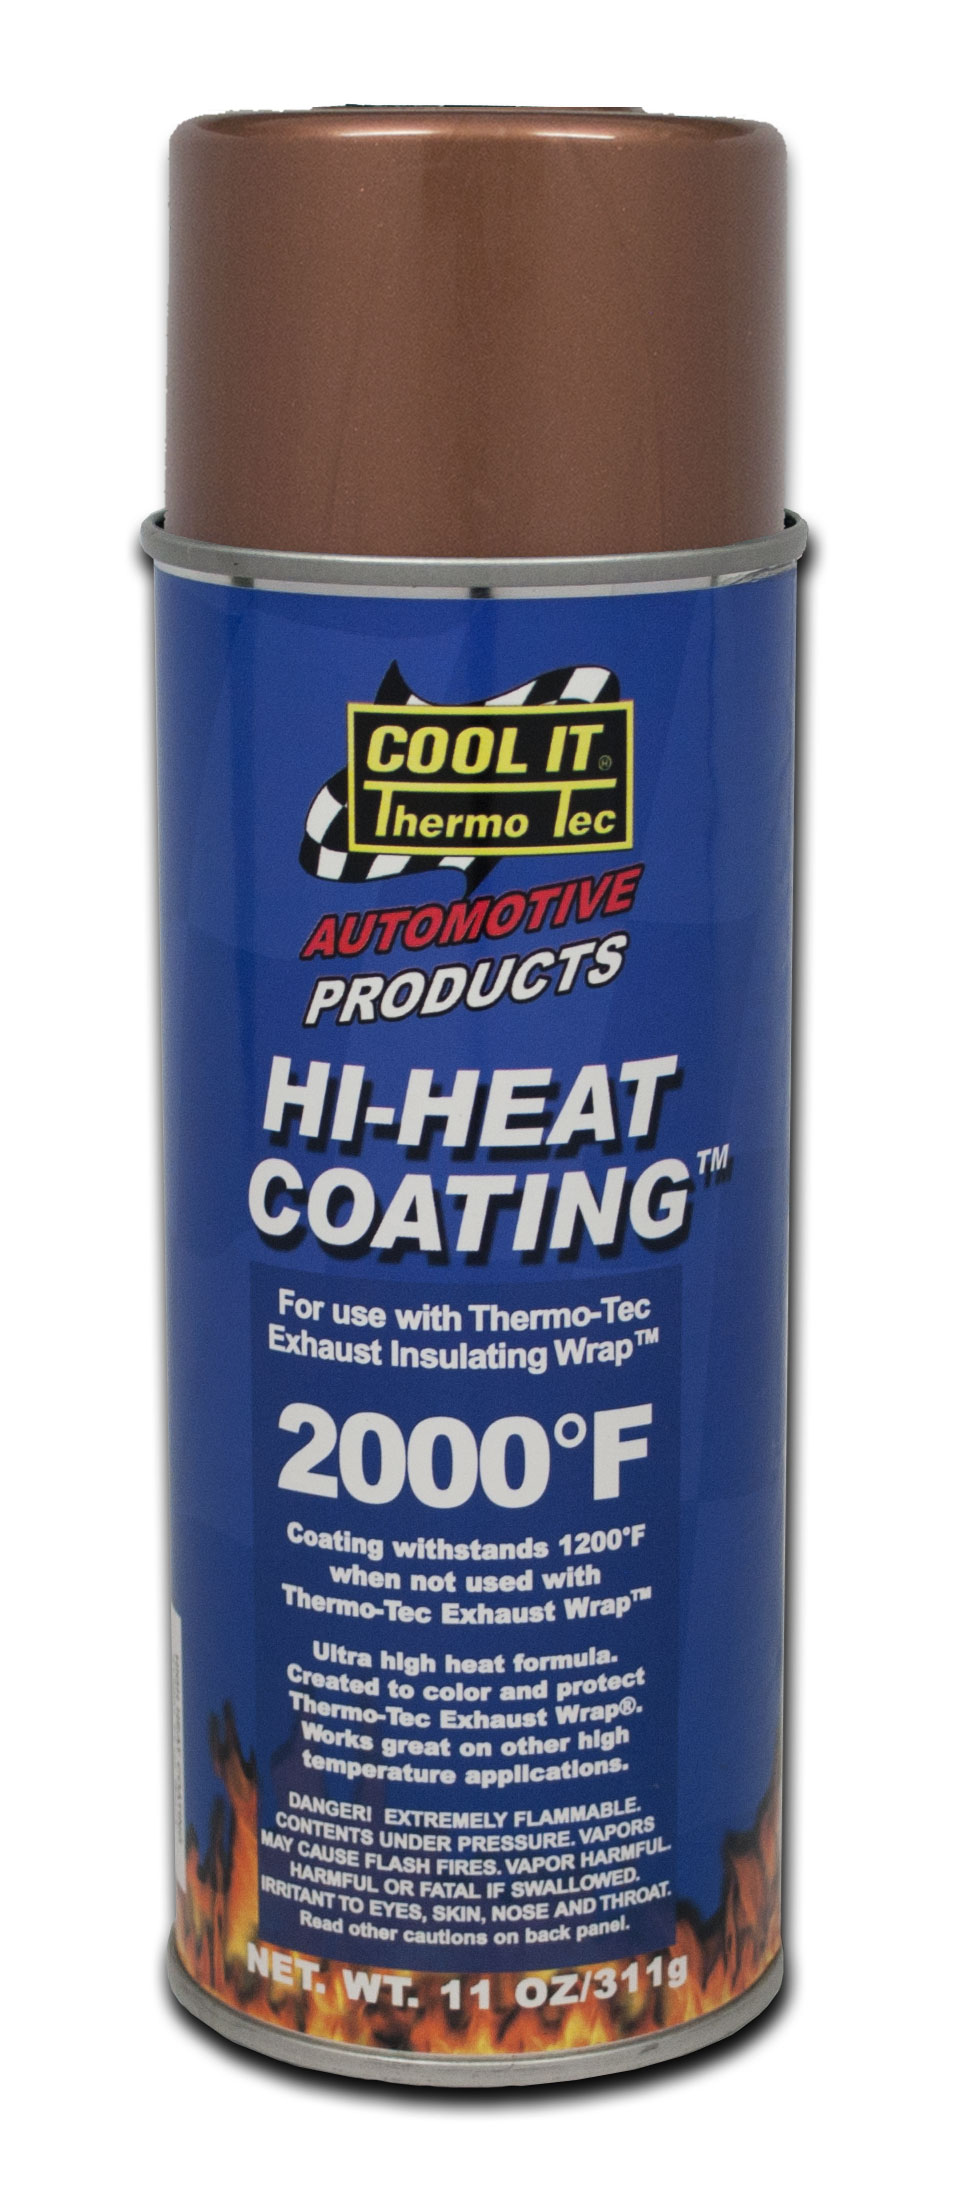 12003 Thermo-Tec Heat Shield Coating For Use With Exhaust Insulating